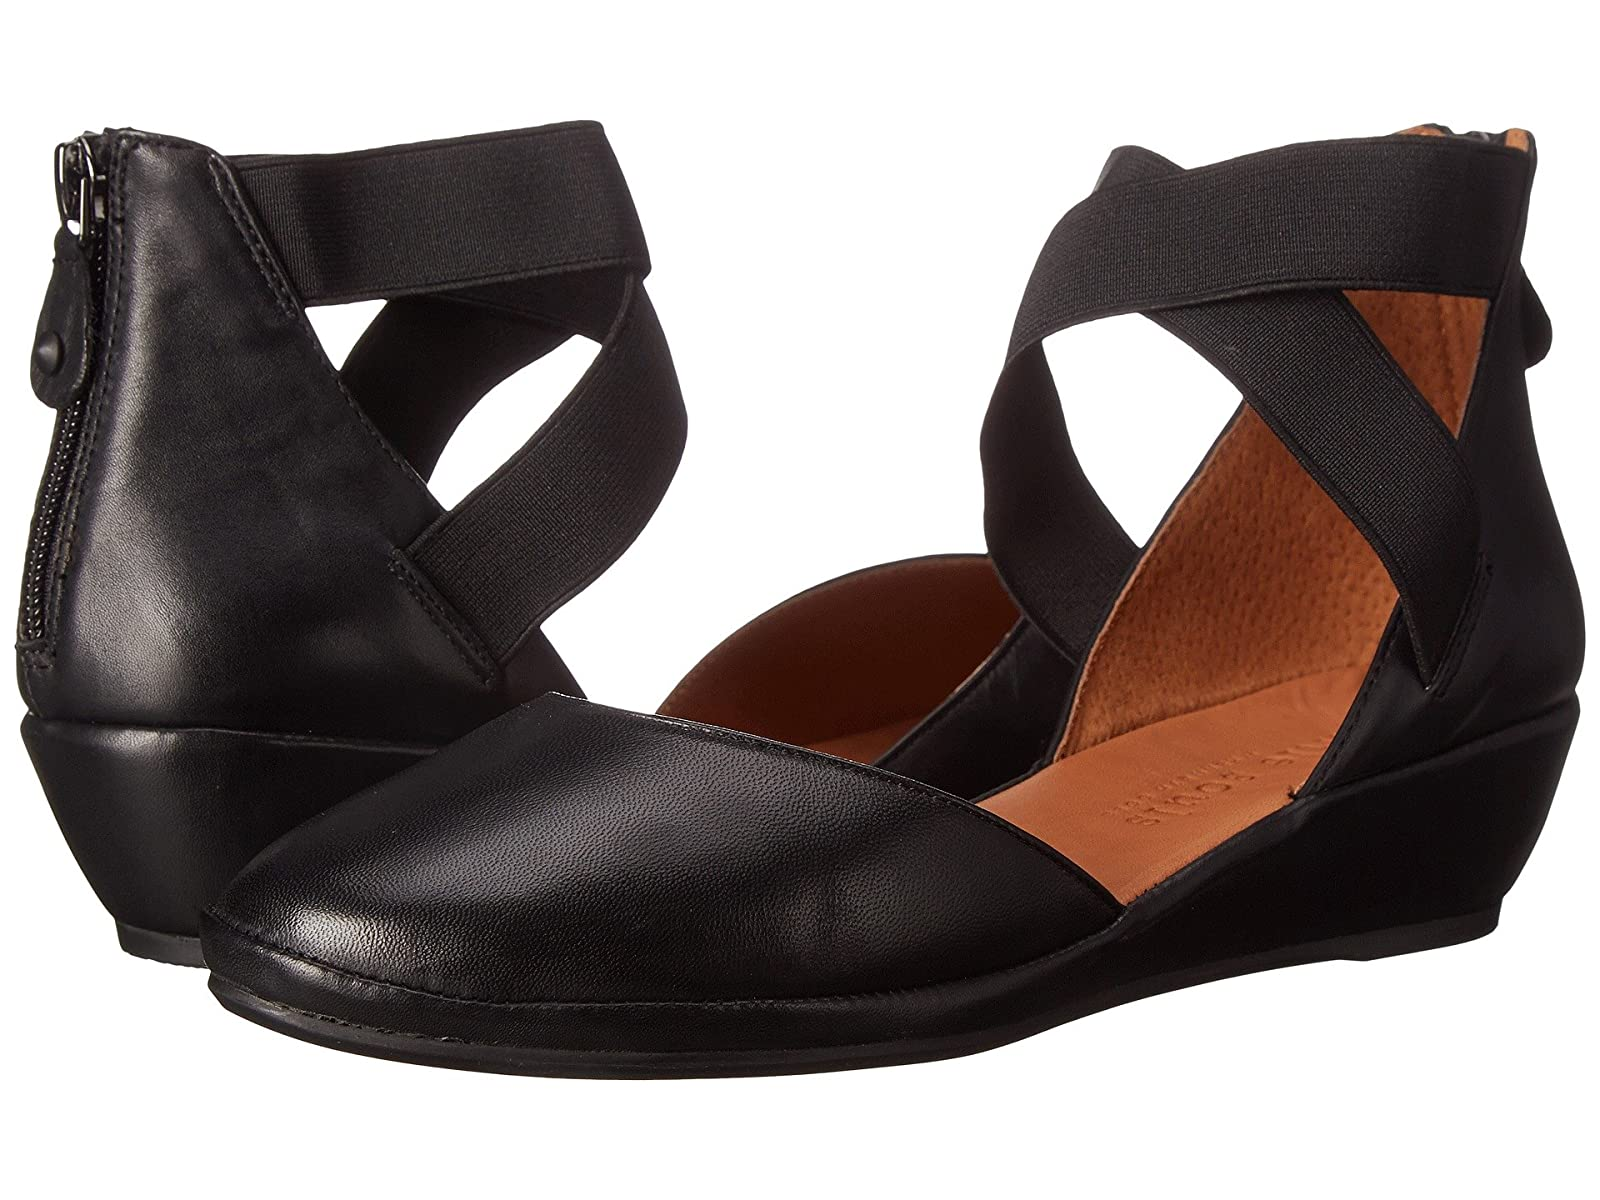 Gentle Souls by Kenneth Cole NoaAtmospheric grades have affordable shoes